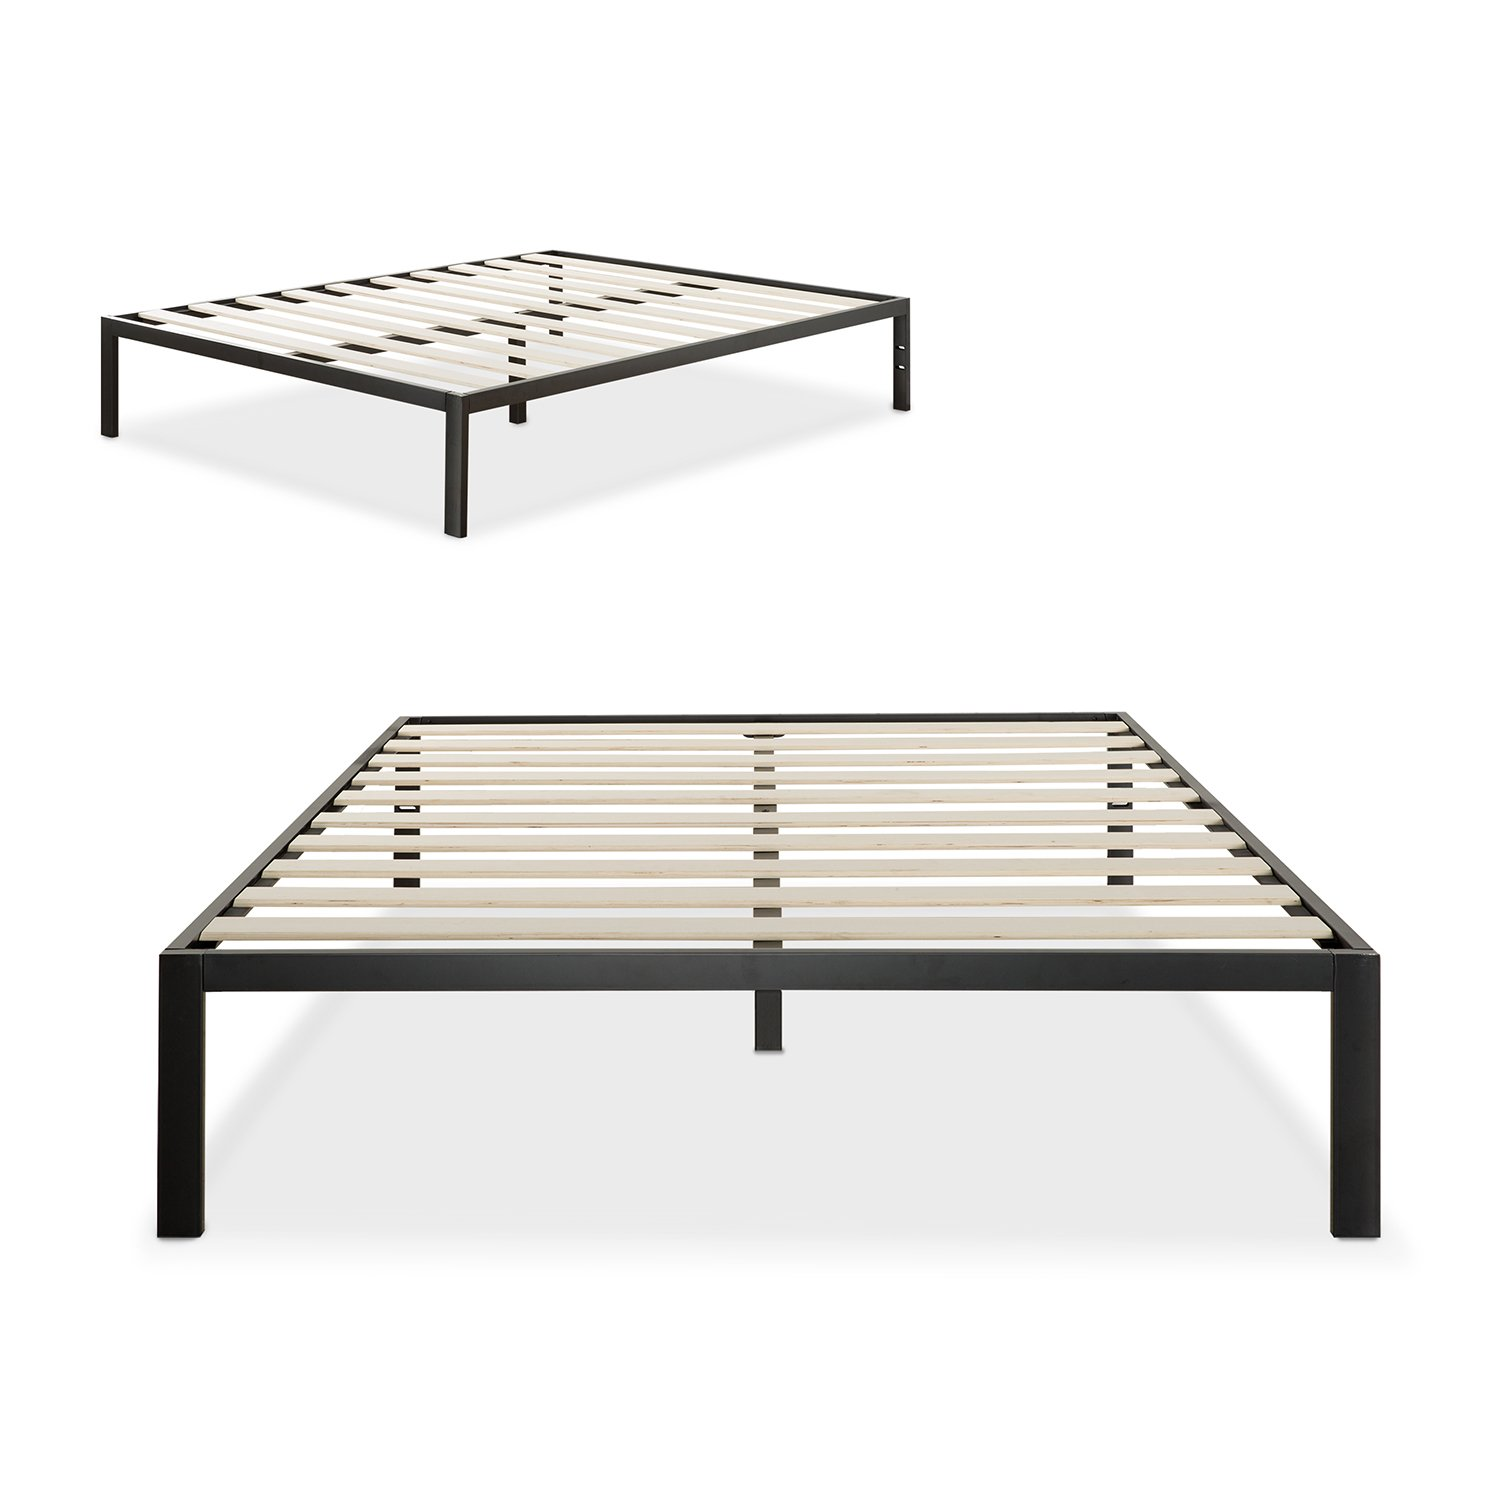 amazoncom zinus modern studio 14 inch platform 1500 metal bed frame mattress foundation no boxspring needed wooden slat support black